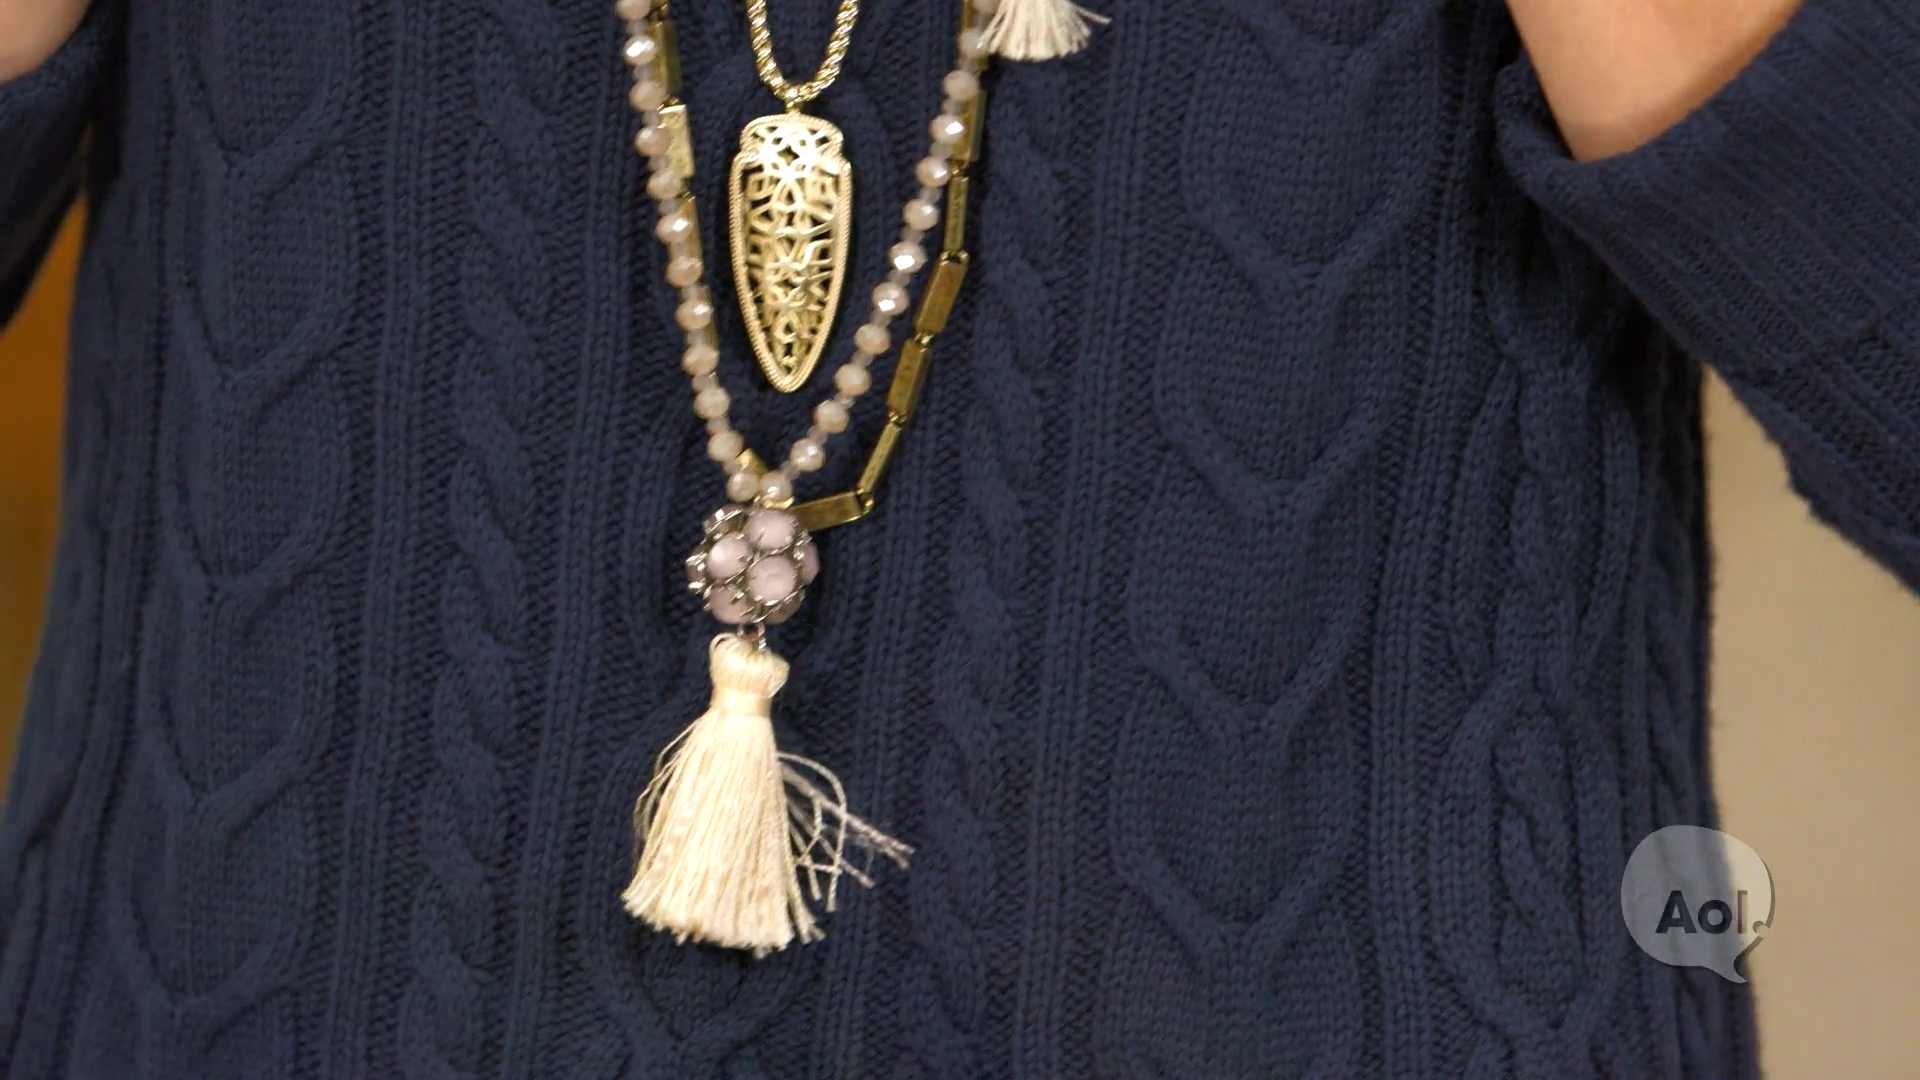 Get the Look: Layering Necklaces